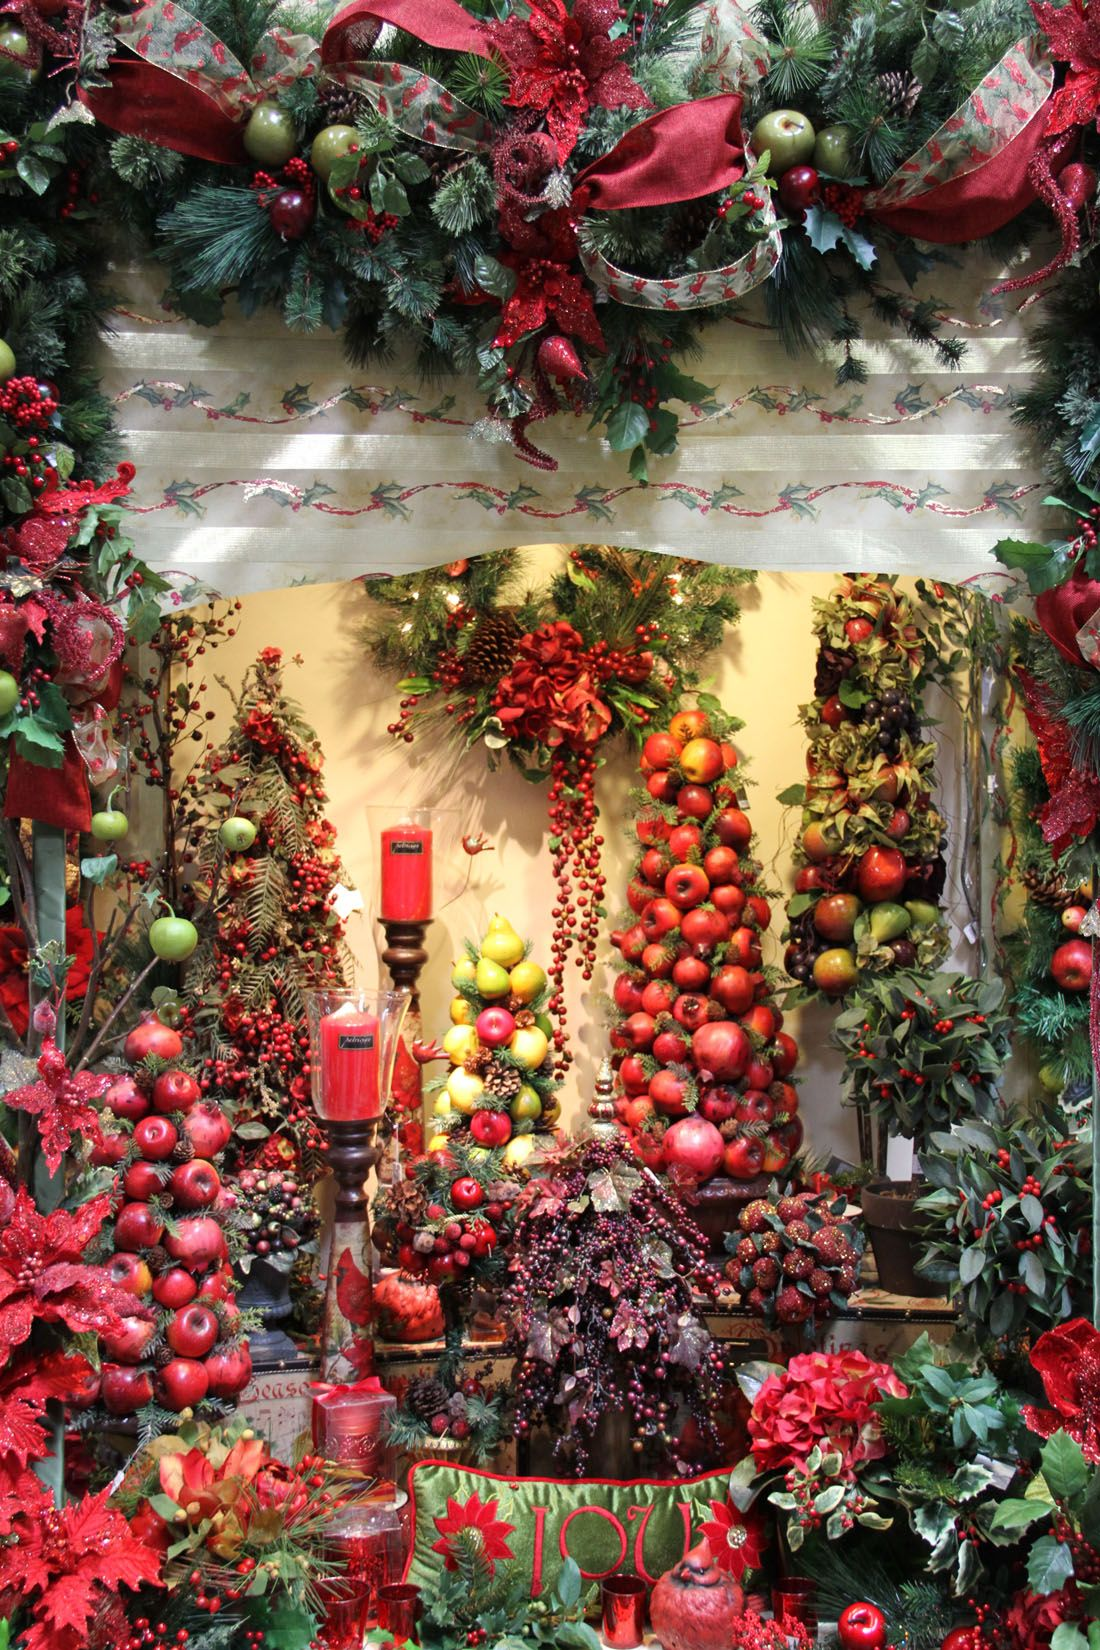 Berry merry christmas display santa ana california